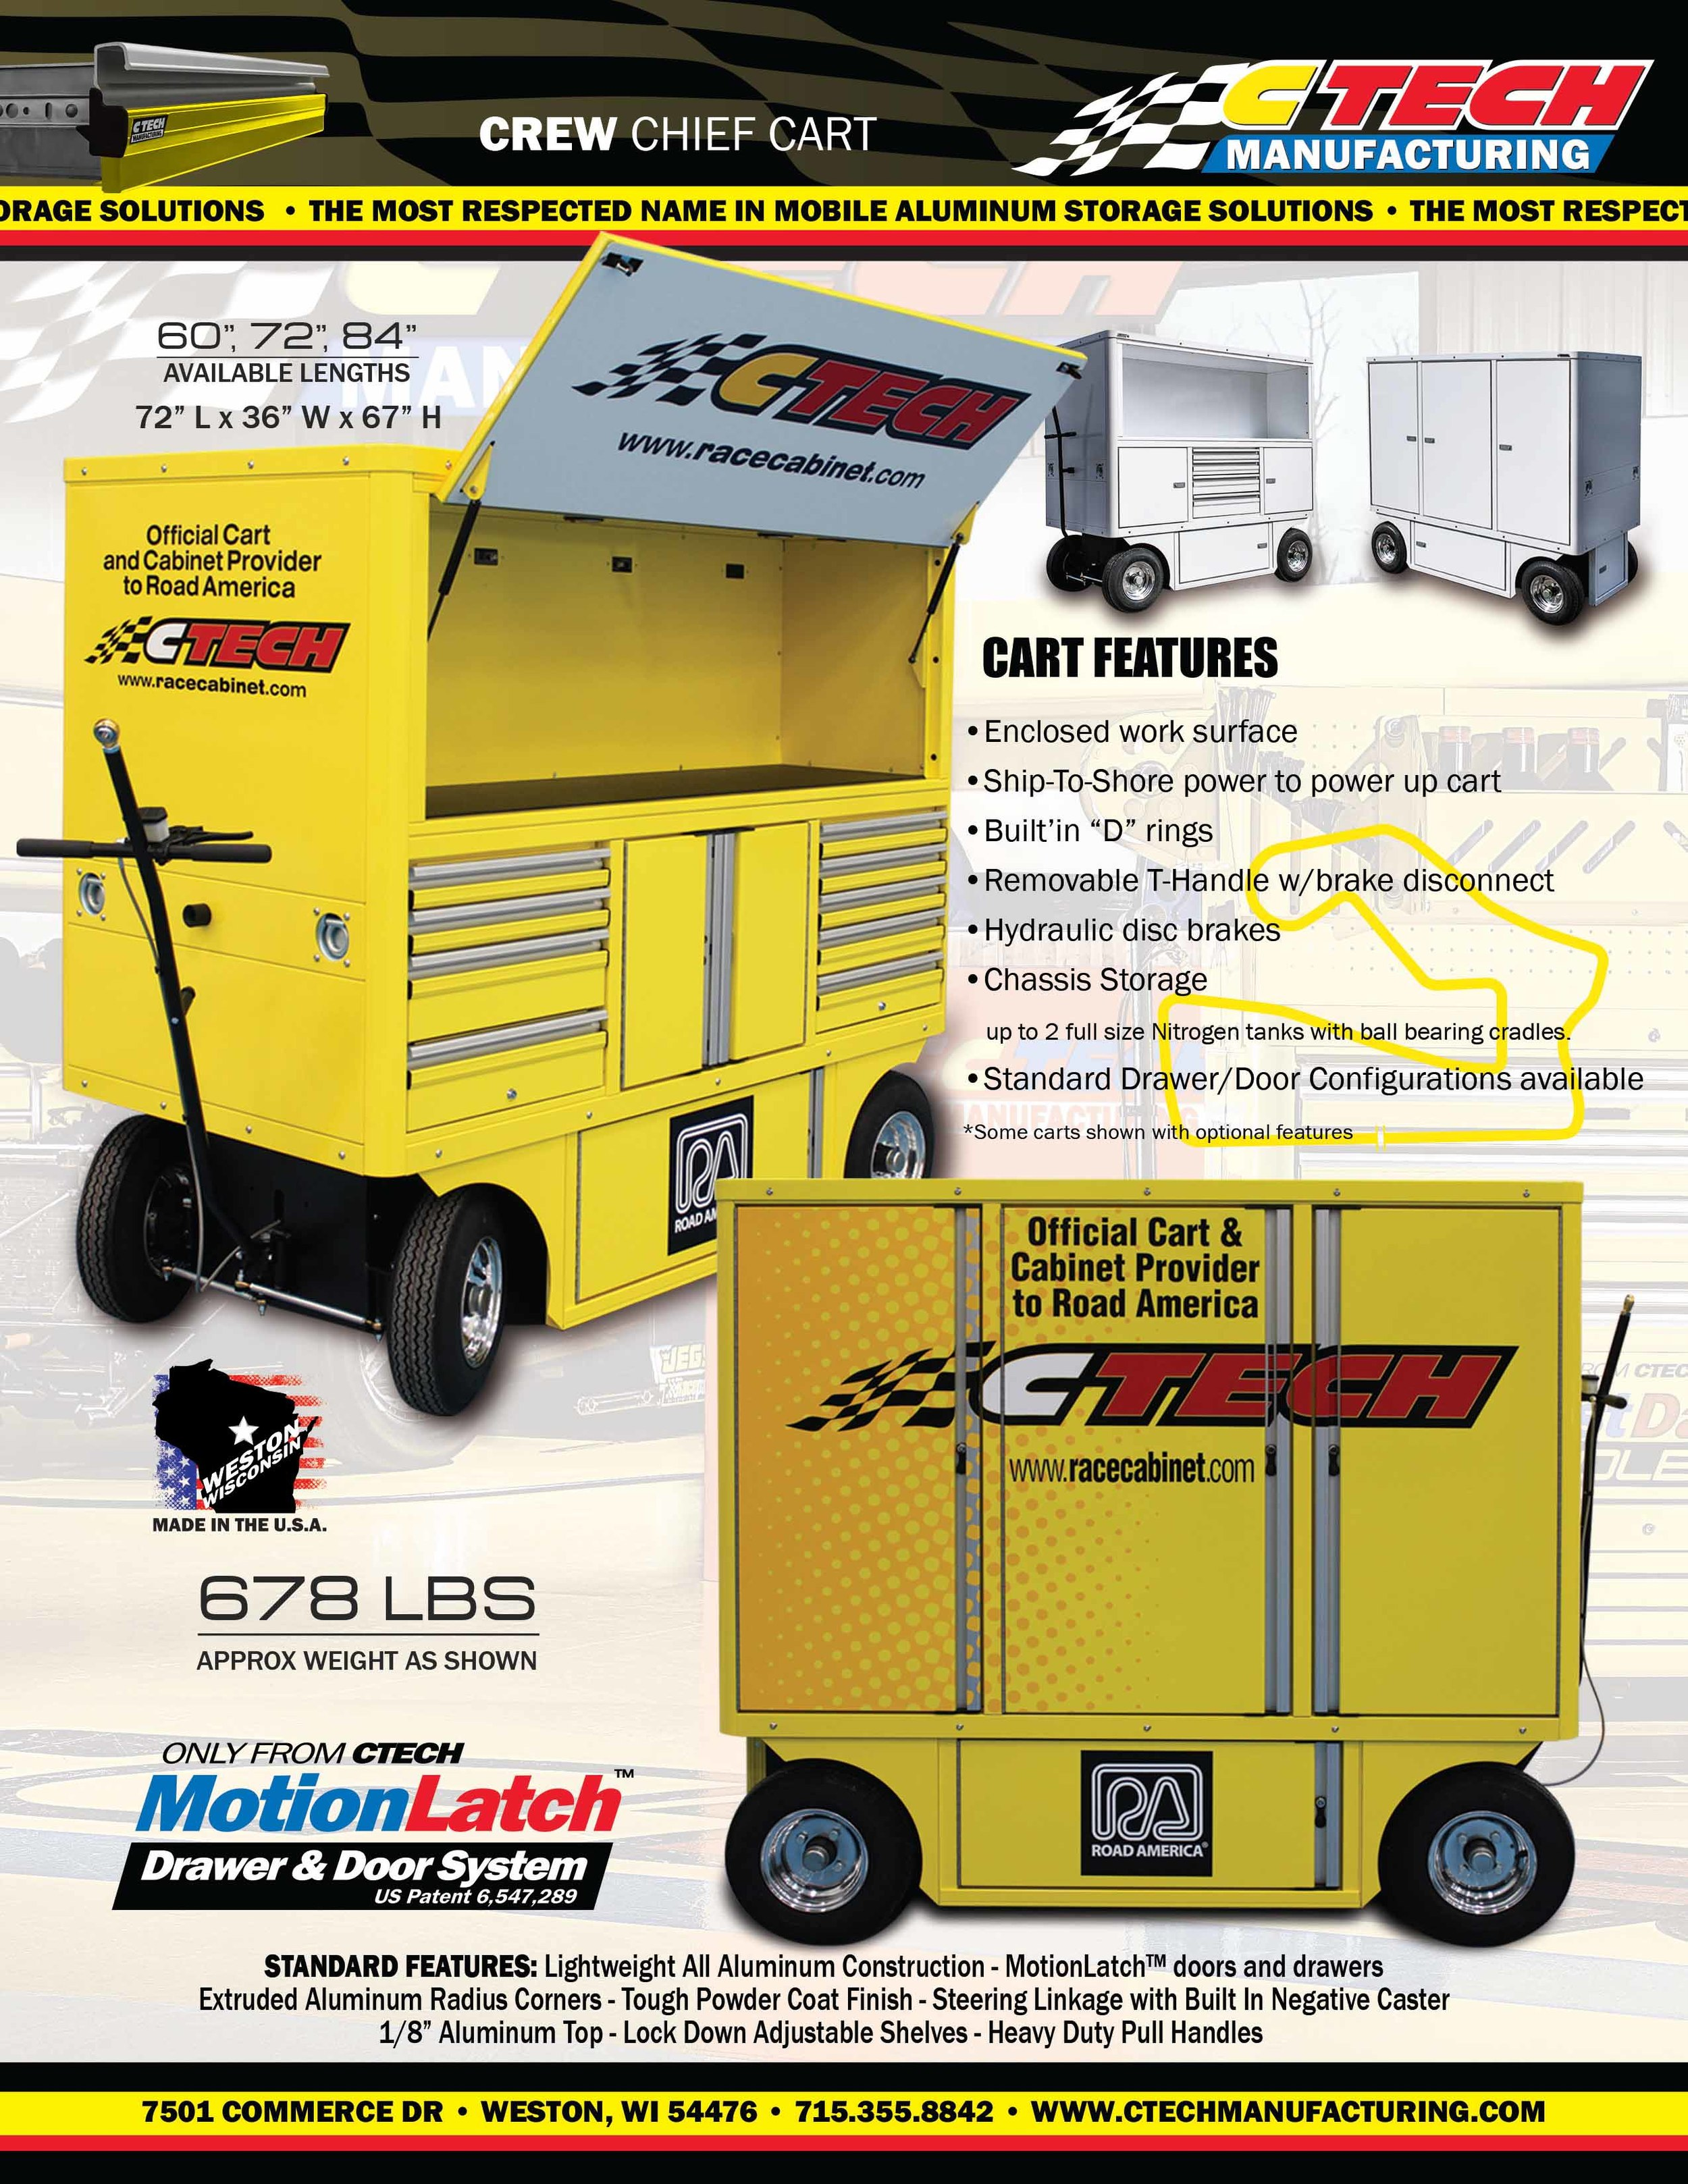 CREW CHIEF CART